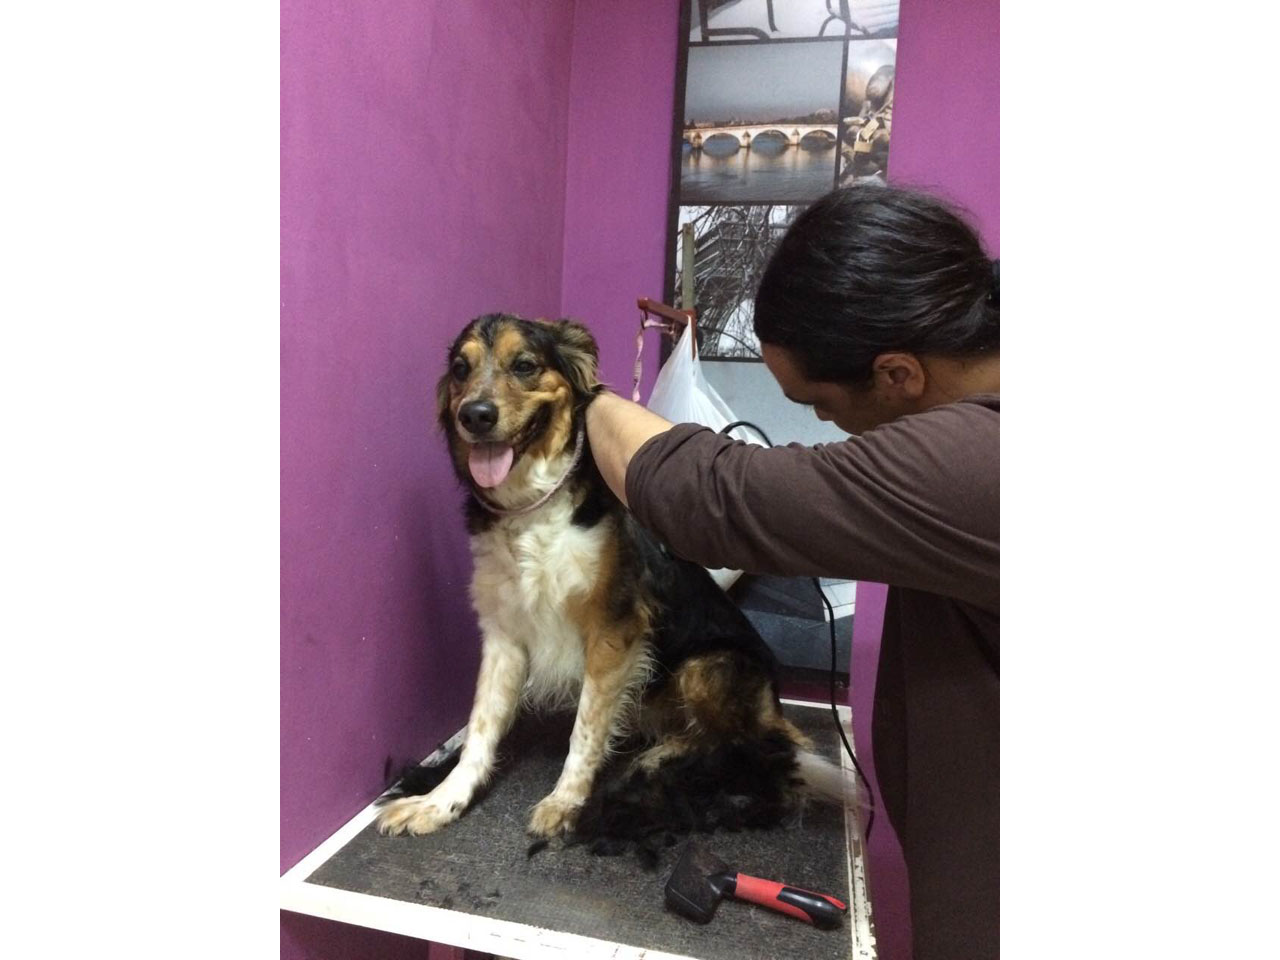 SNOOPY GROOM Pet salon, dog grooming Beograd